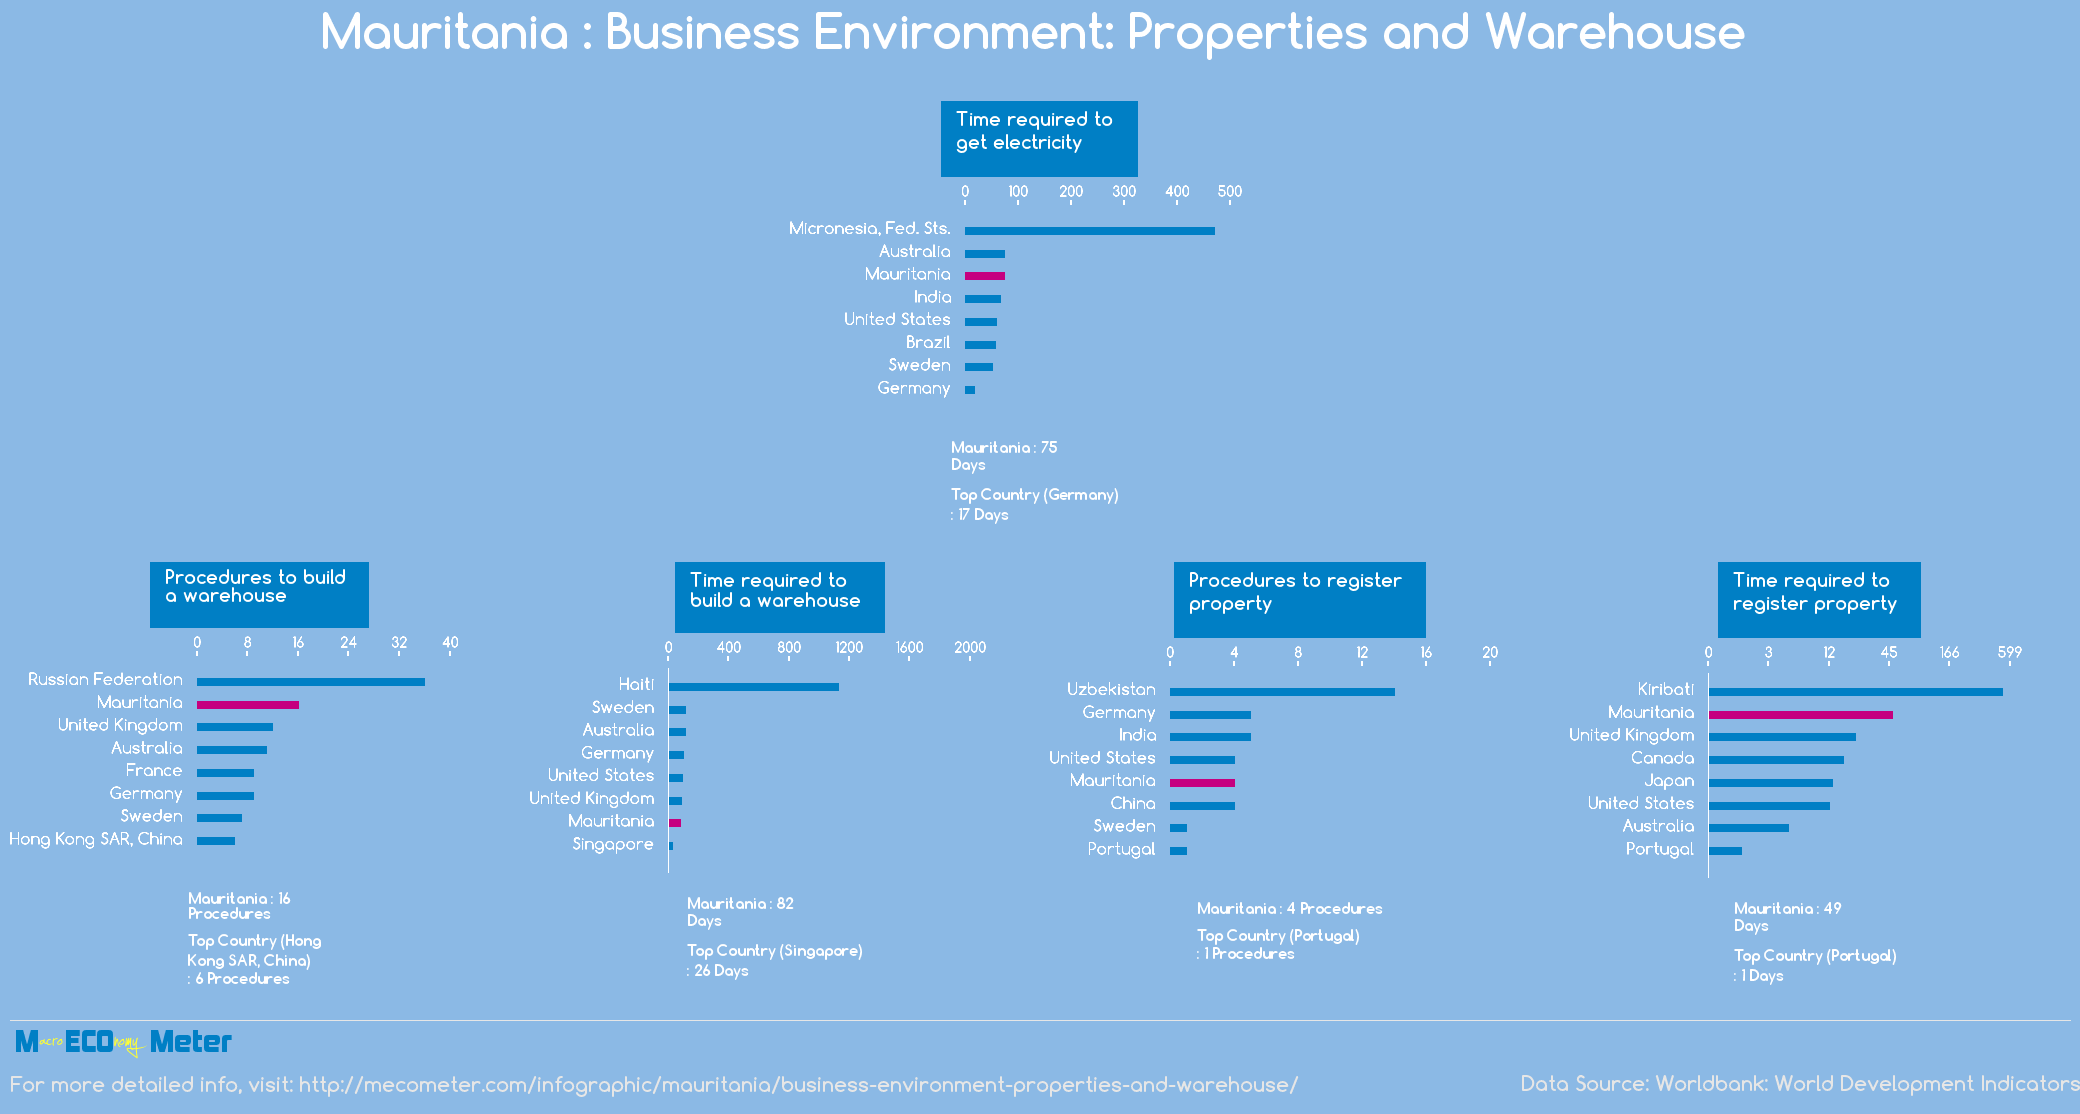 Mauritania : Business Environment: Properties and Warehouse